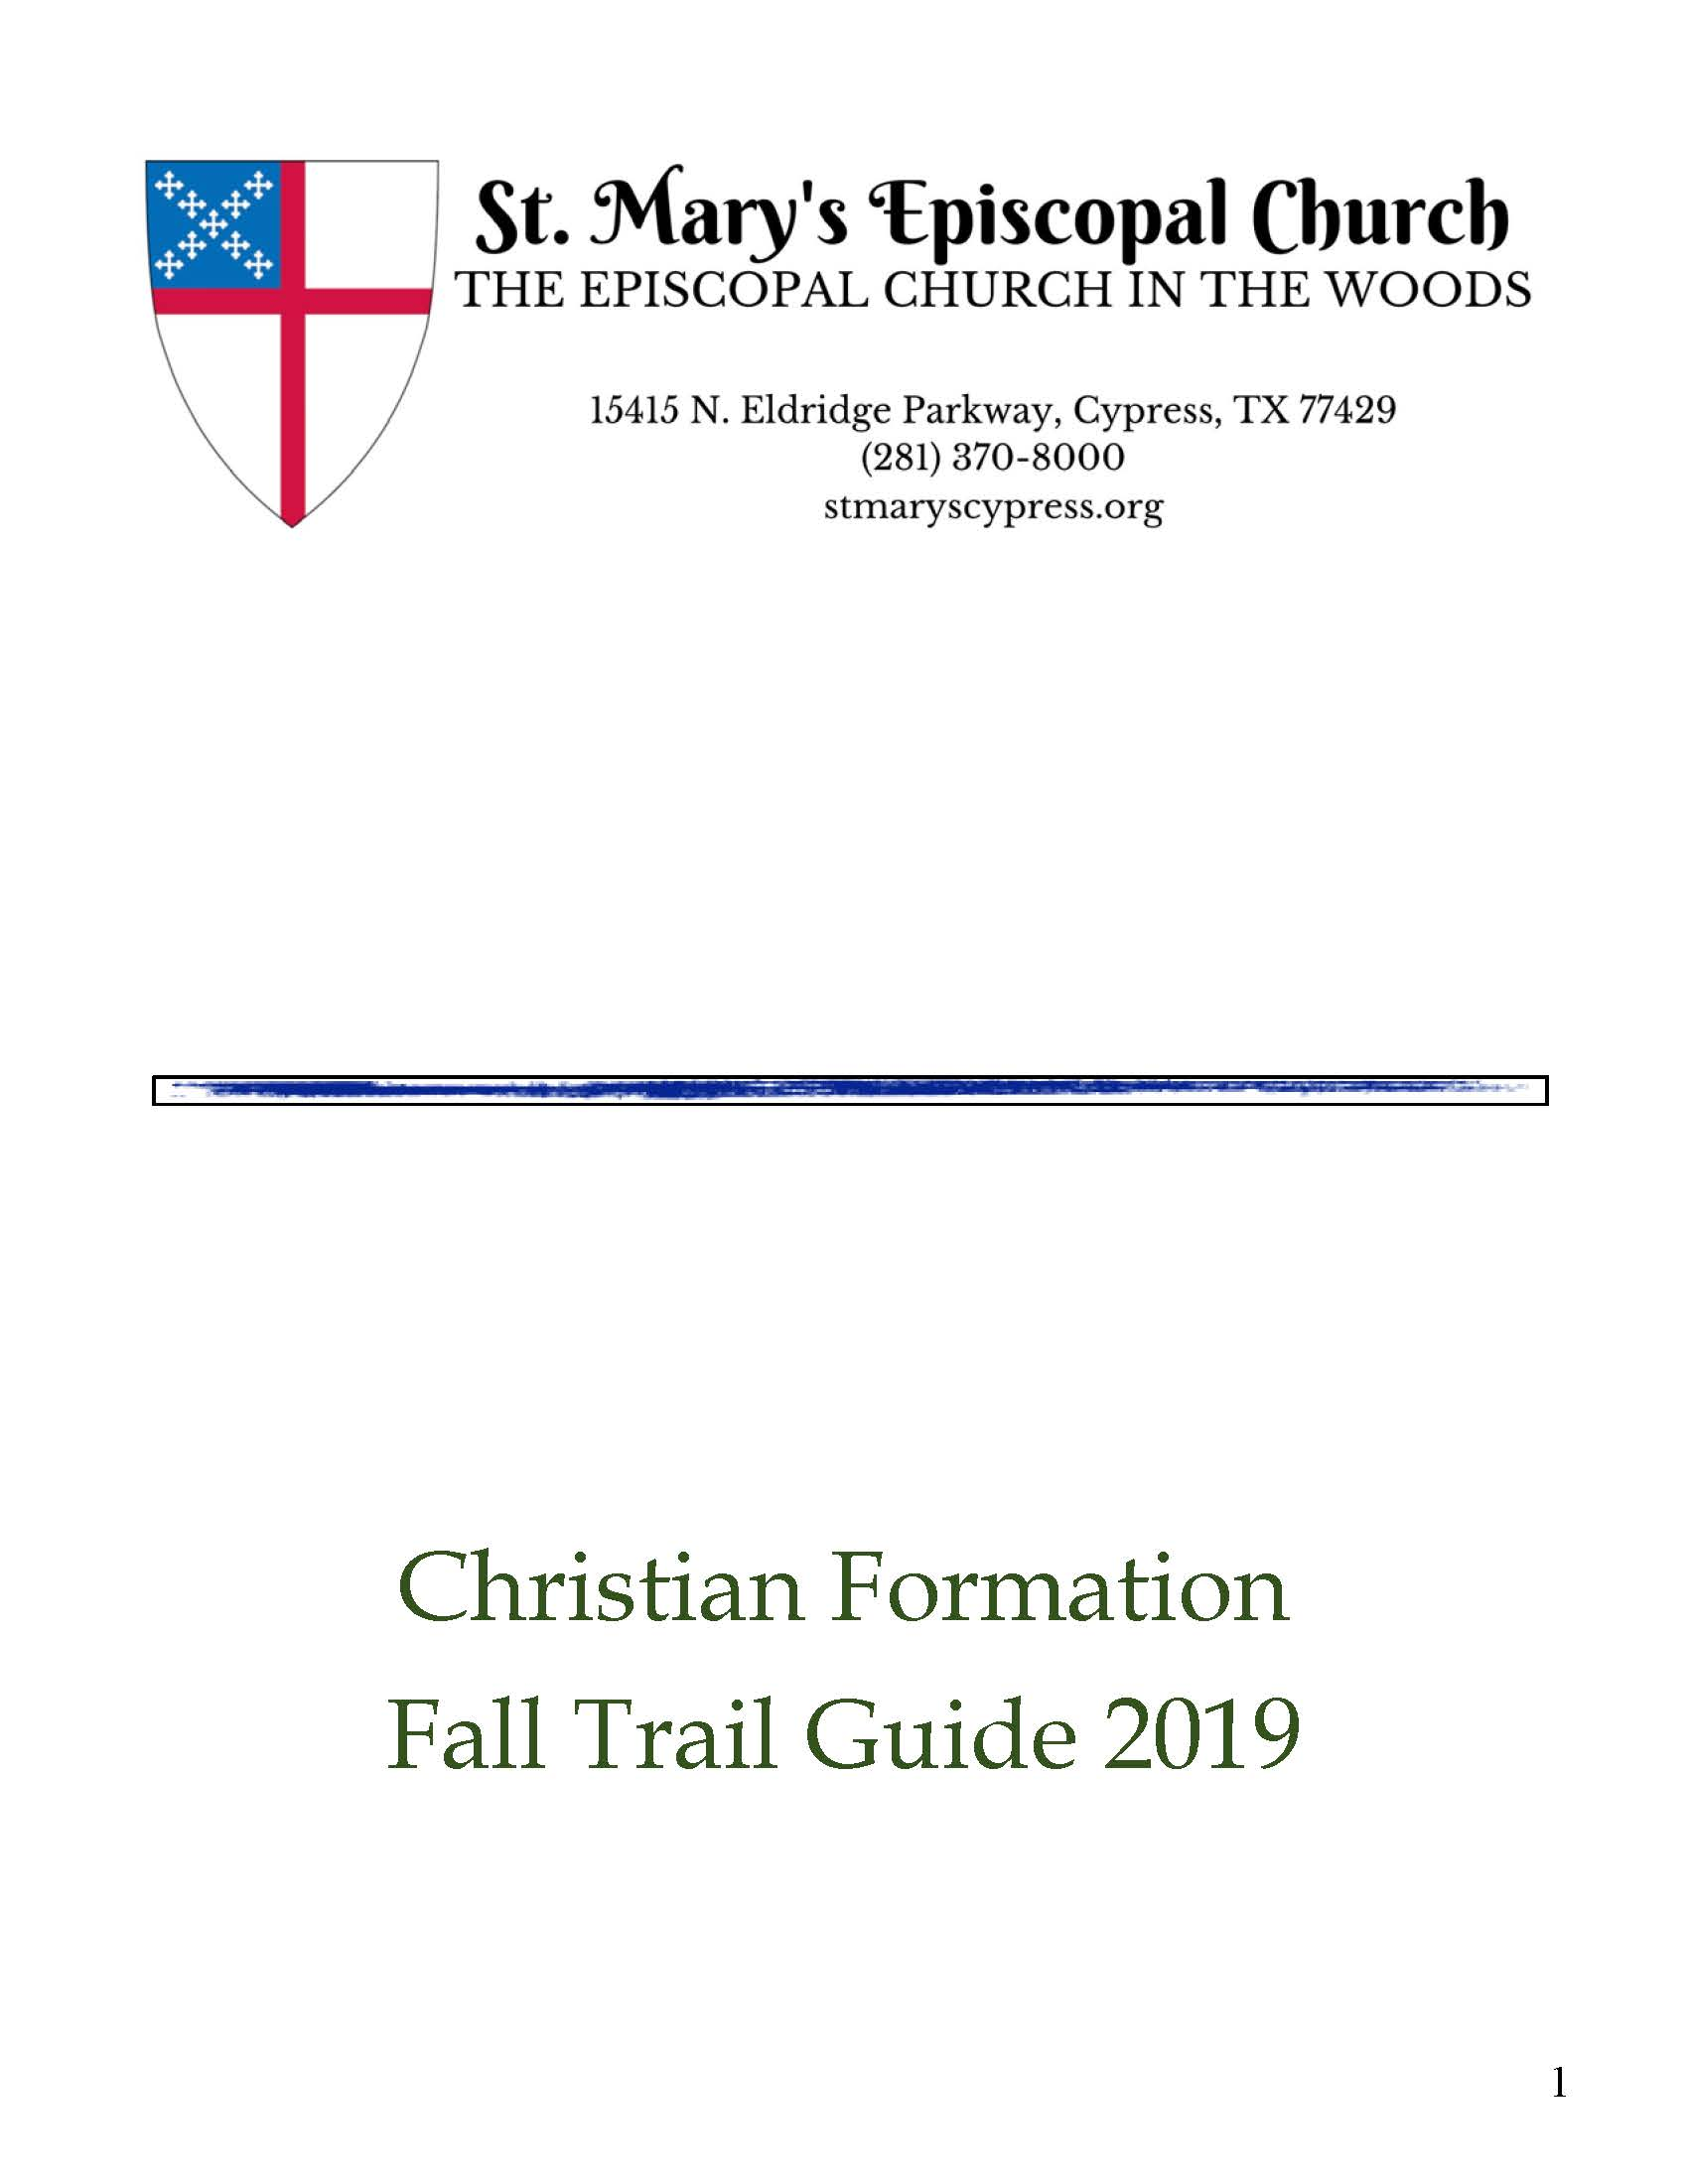 Trailguide Fall 2019 Cover.jpg